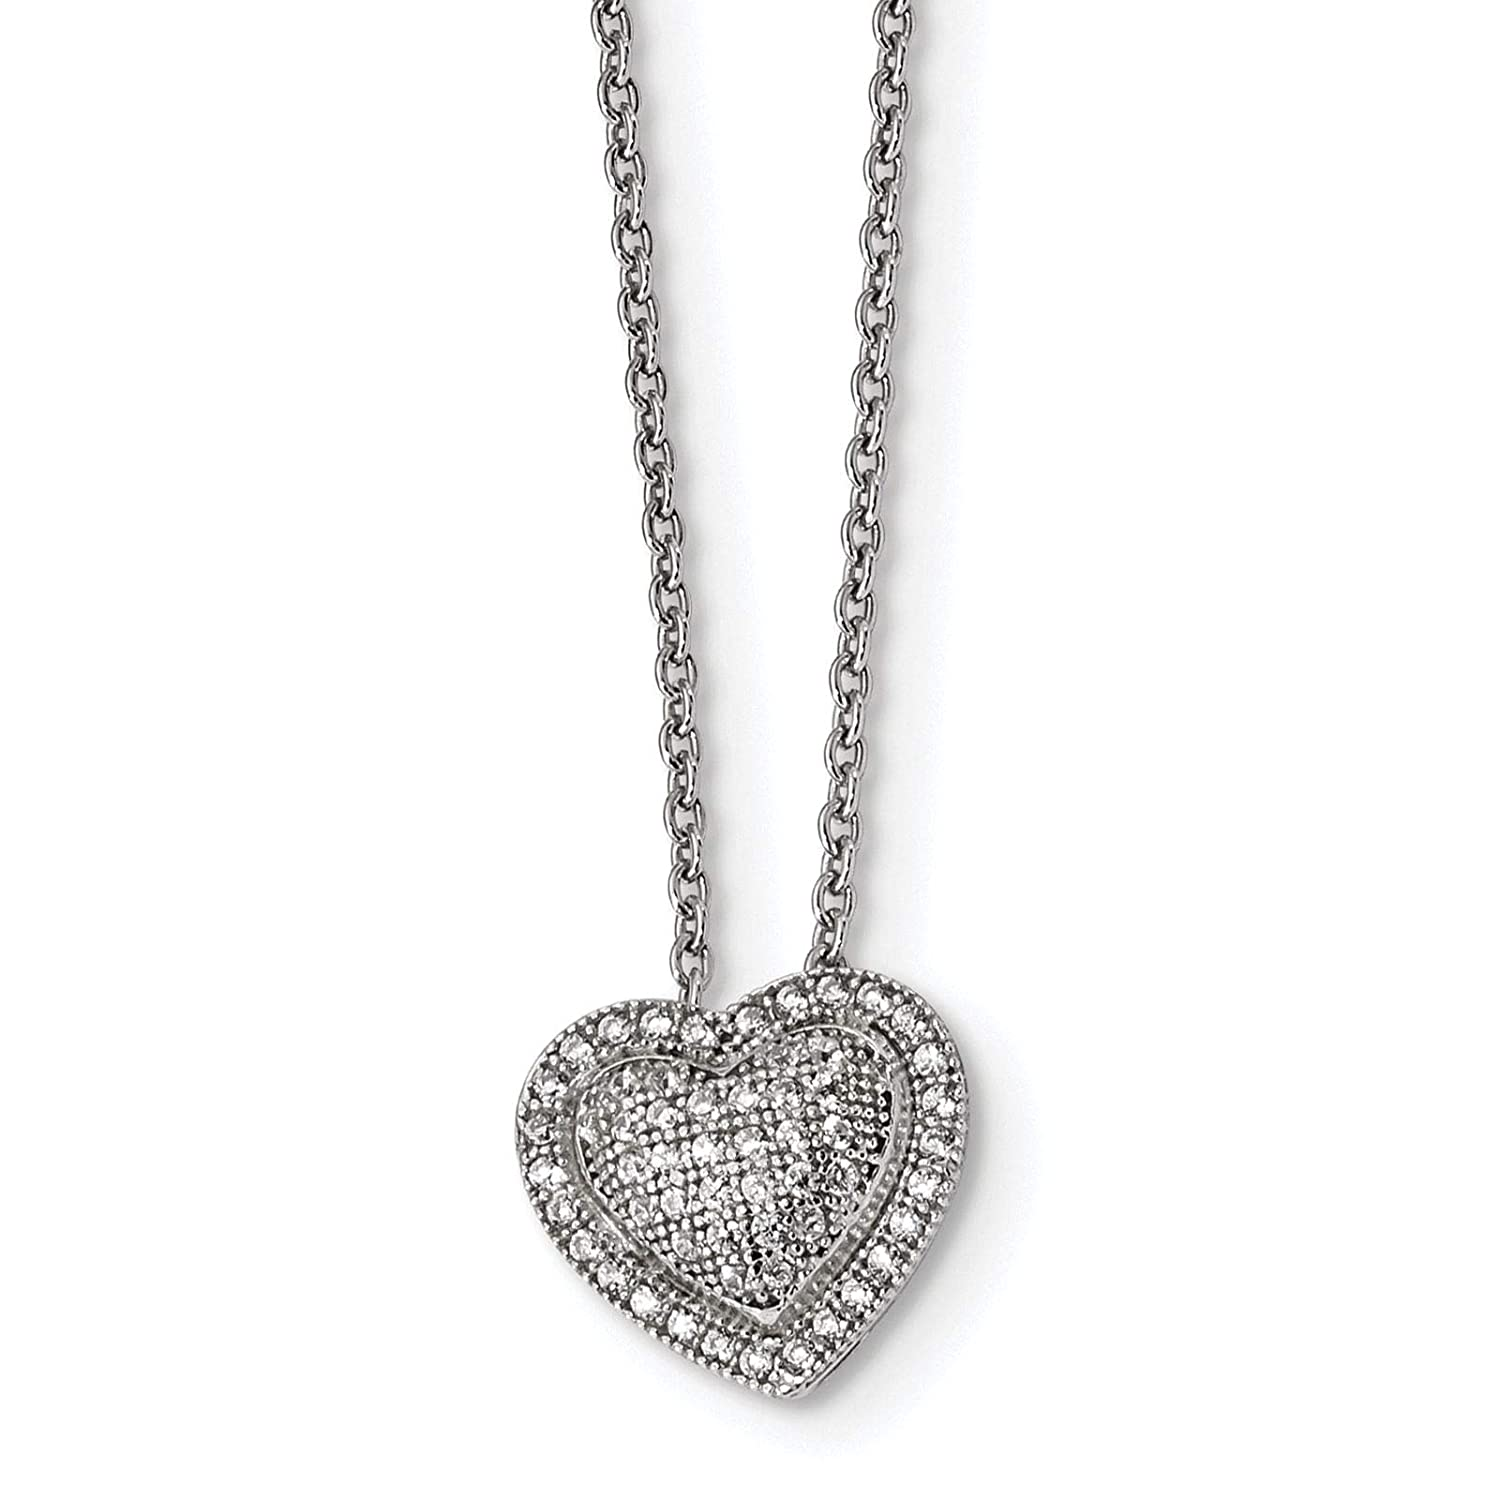 Brilliant Embers Sterling Silver Rhodium-plated Polished CZ Heart Pendant Necklace 18 2 Extender